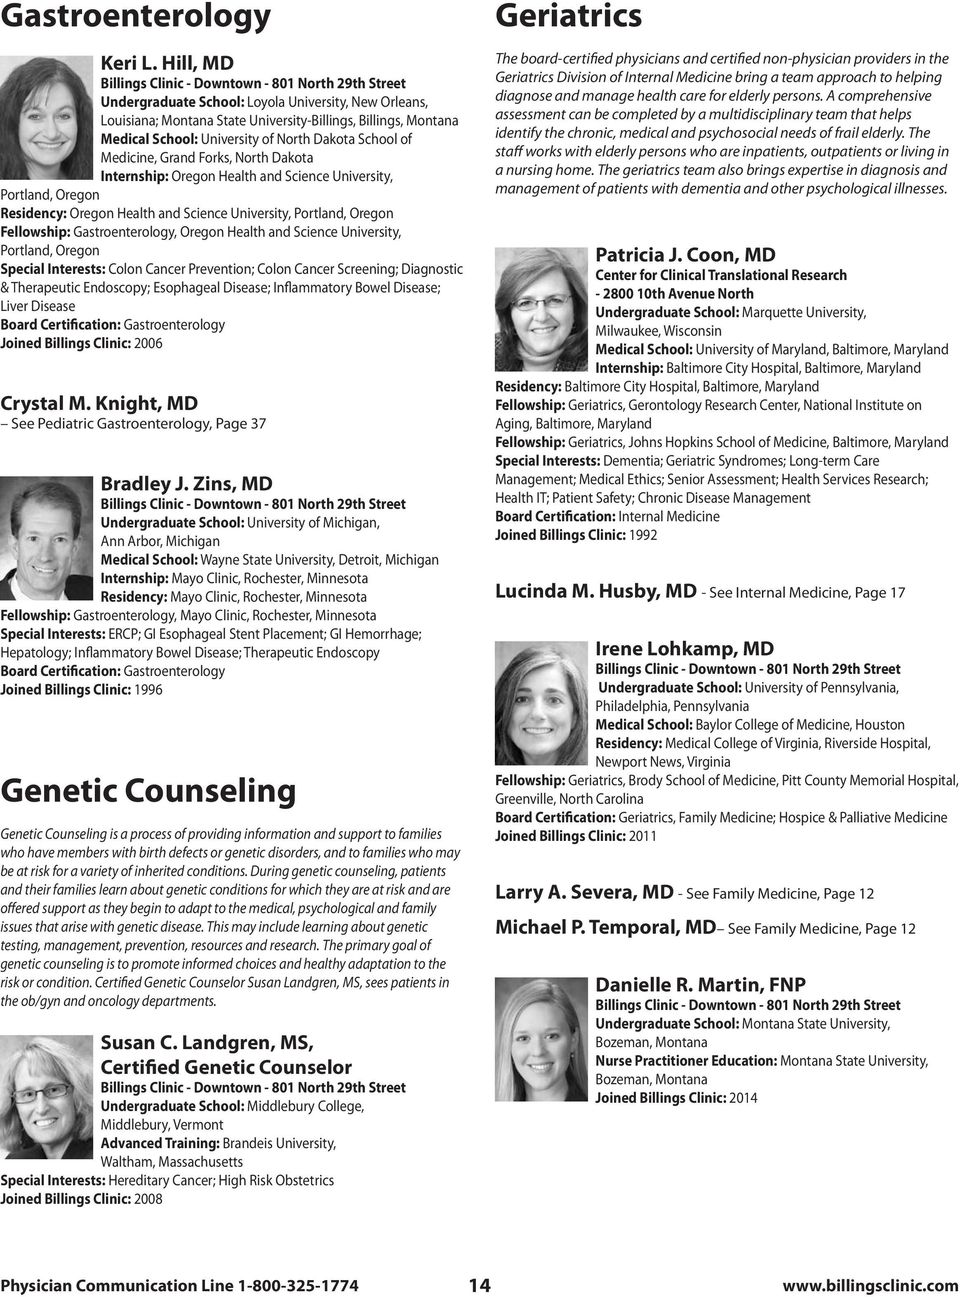 Front cover group photos: Left side, Billings Clinic Vascular